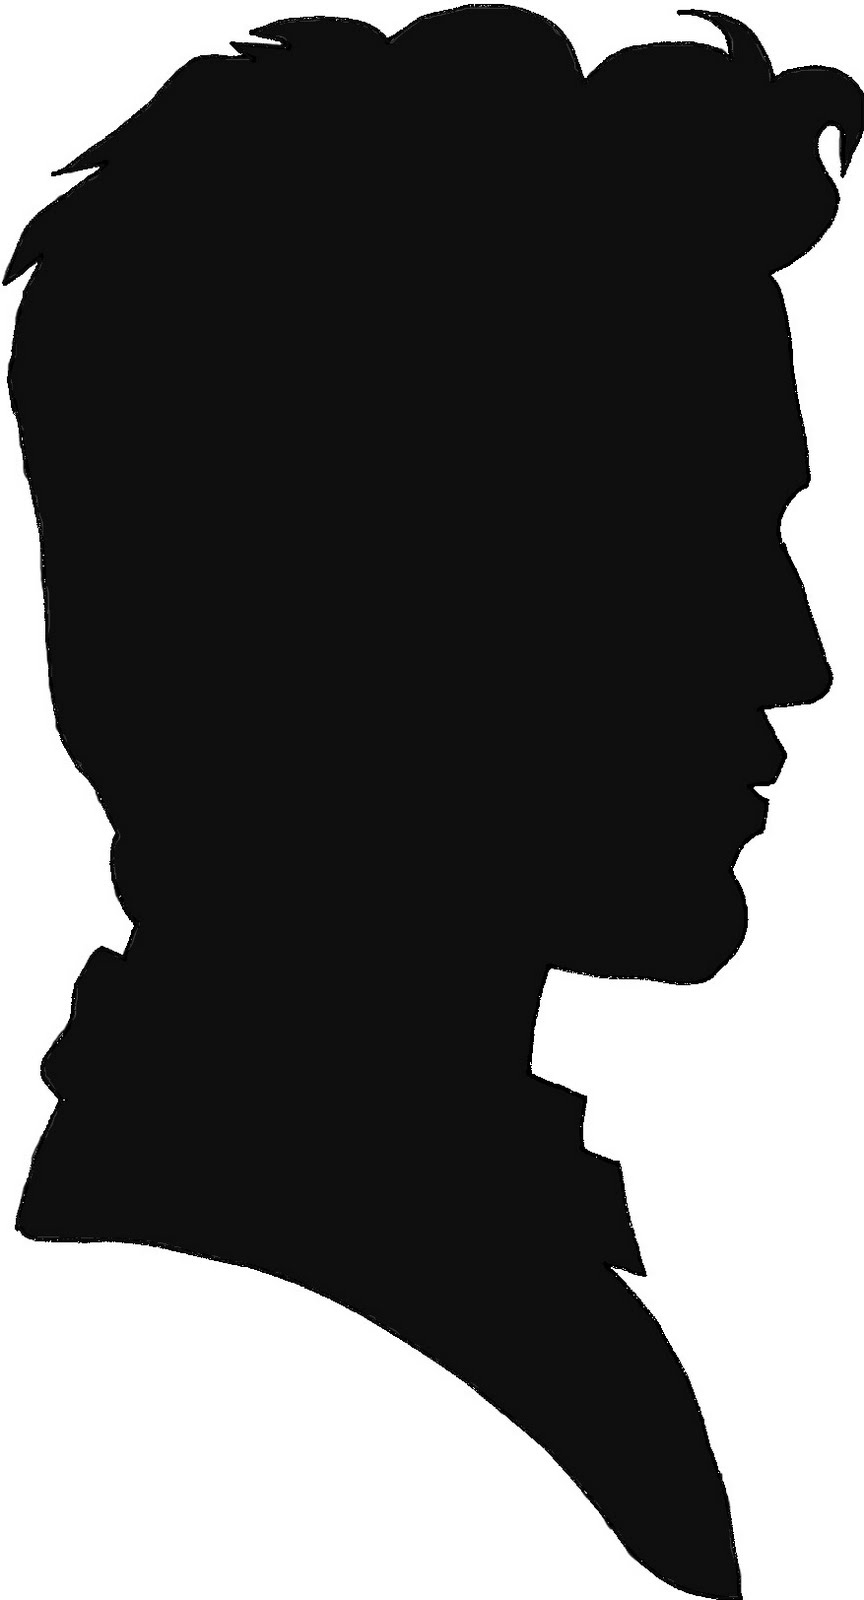 Free Silhouette Man Head, Download Free Clip Art, Free Clip.